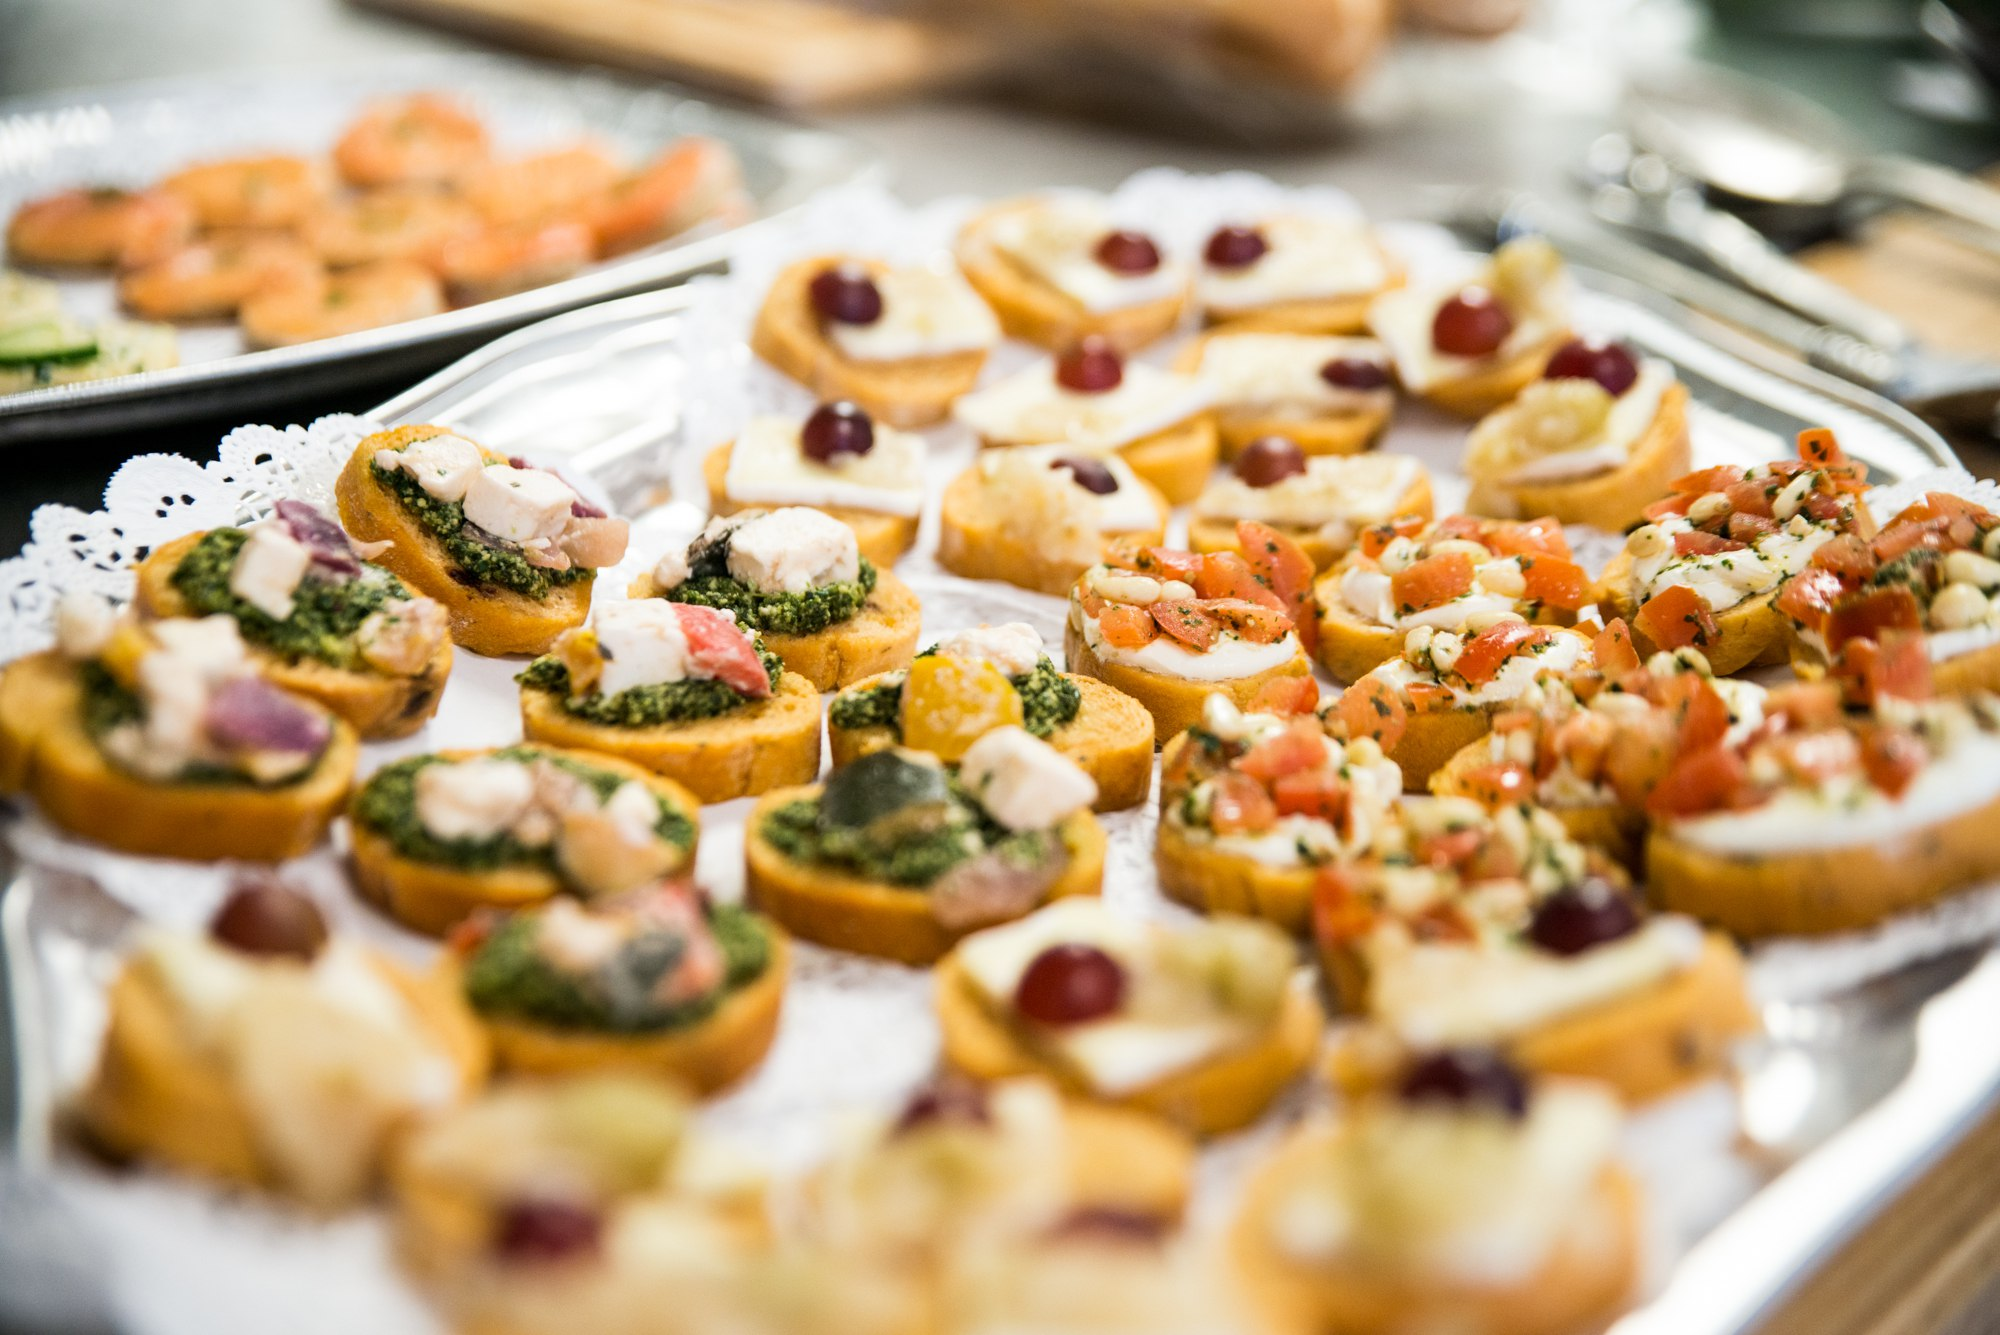 We'll take great pictures of any catering at your event